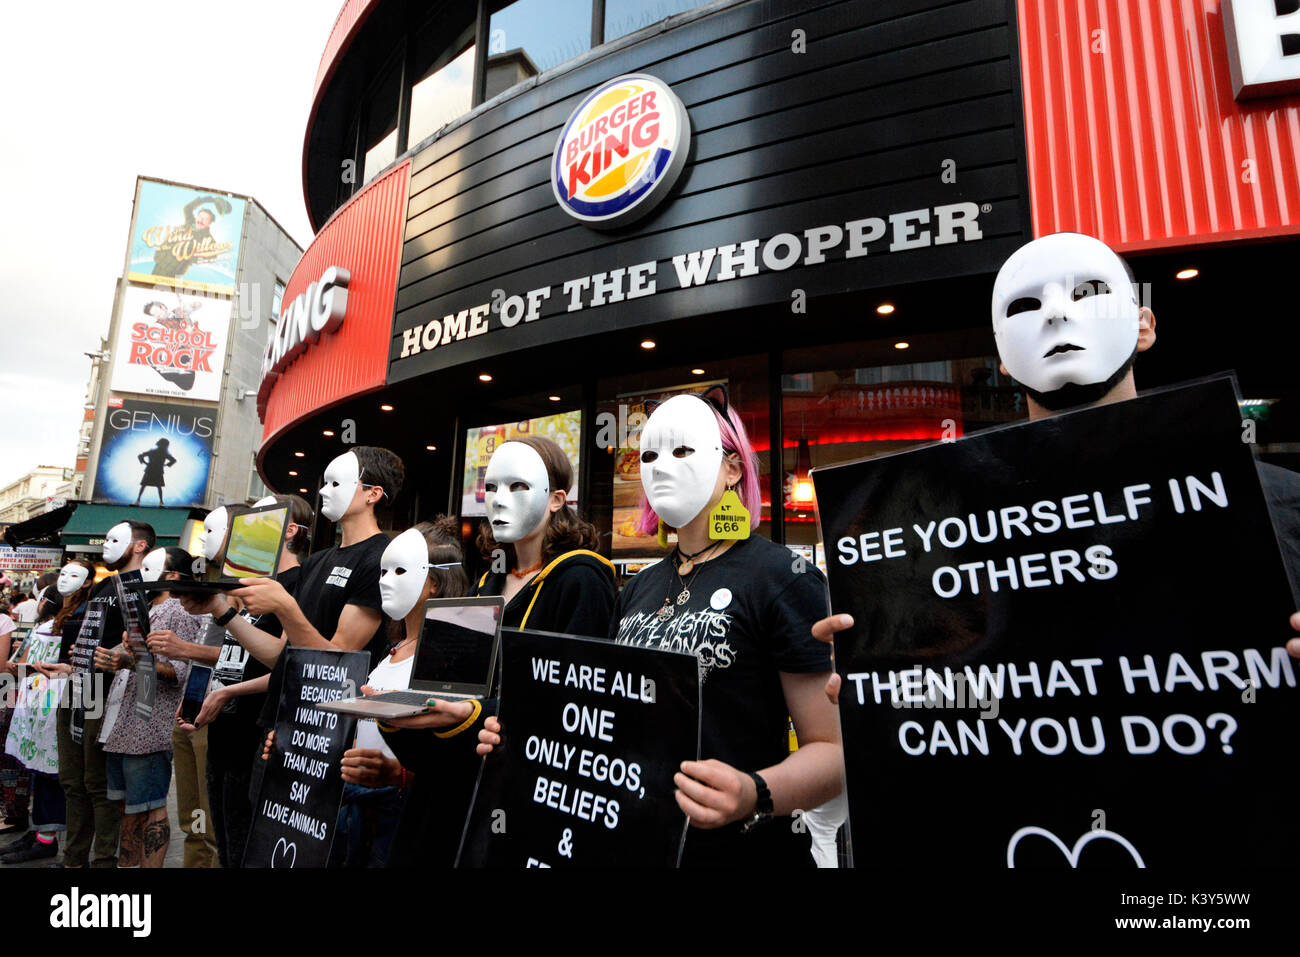 Earthlings Experience animal rights protesters outside Burger King attempting to convert the public to become vegan in London. Space for copy - Stock Image